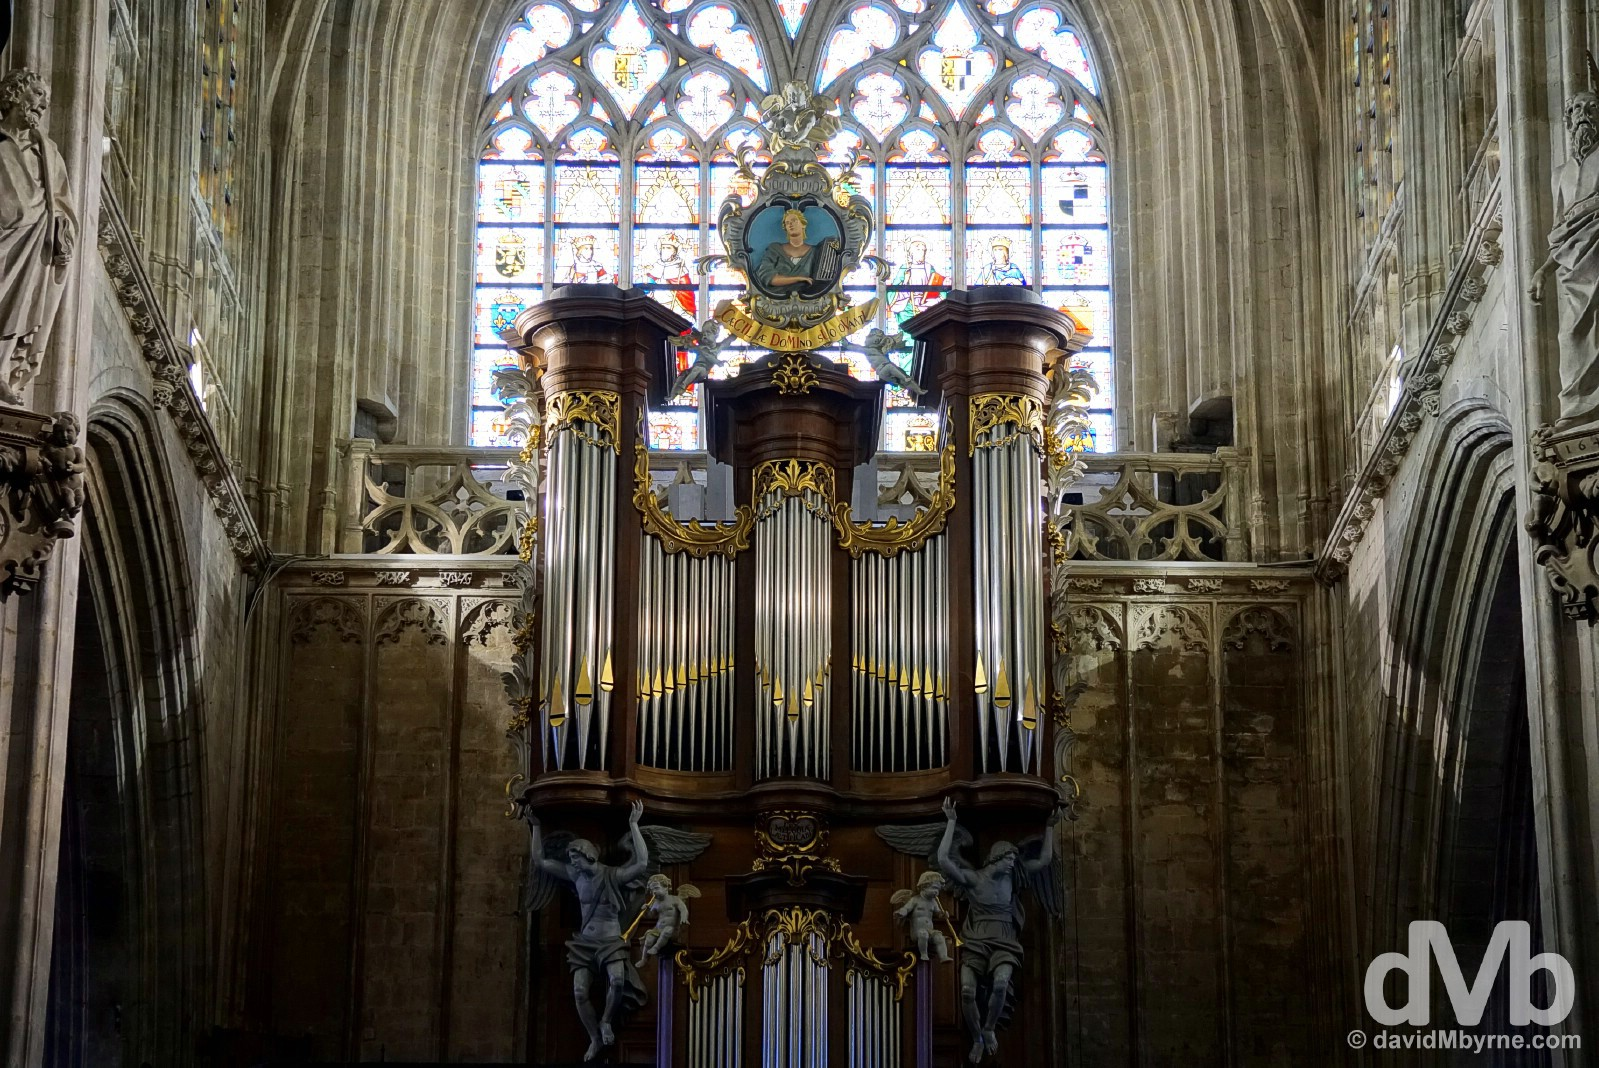 The impressive organ of the Our Land of the Sablon Church in Brussels, Belgium. January 14, 2016.